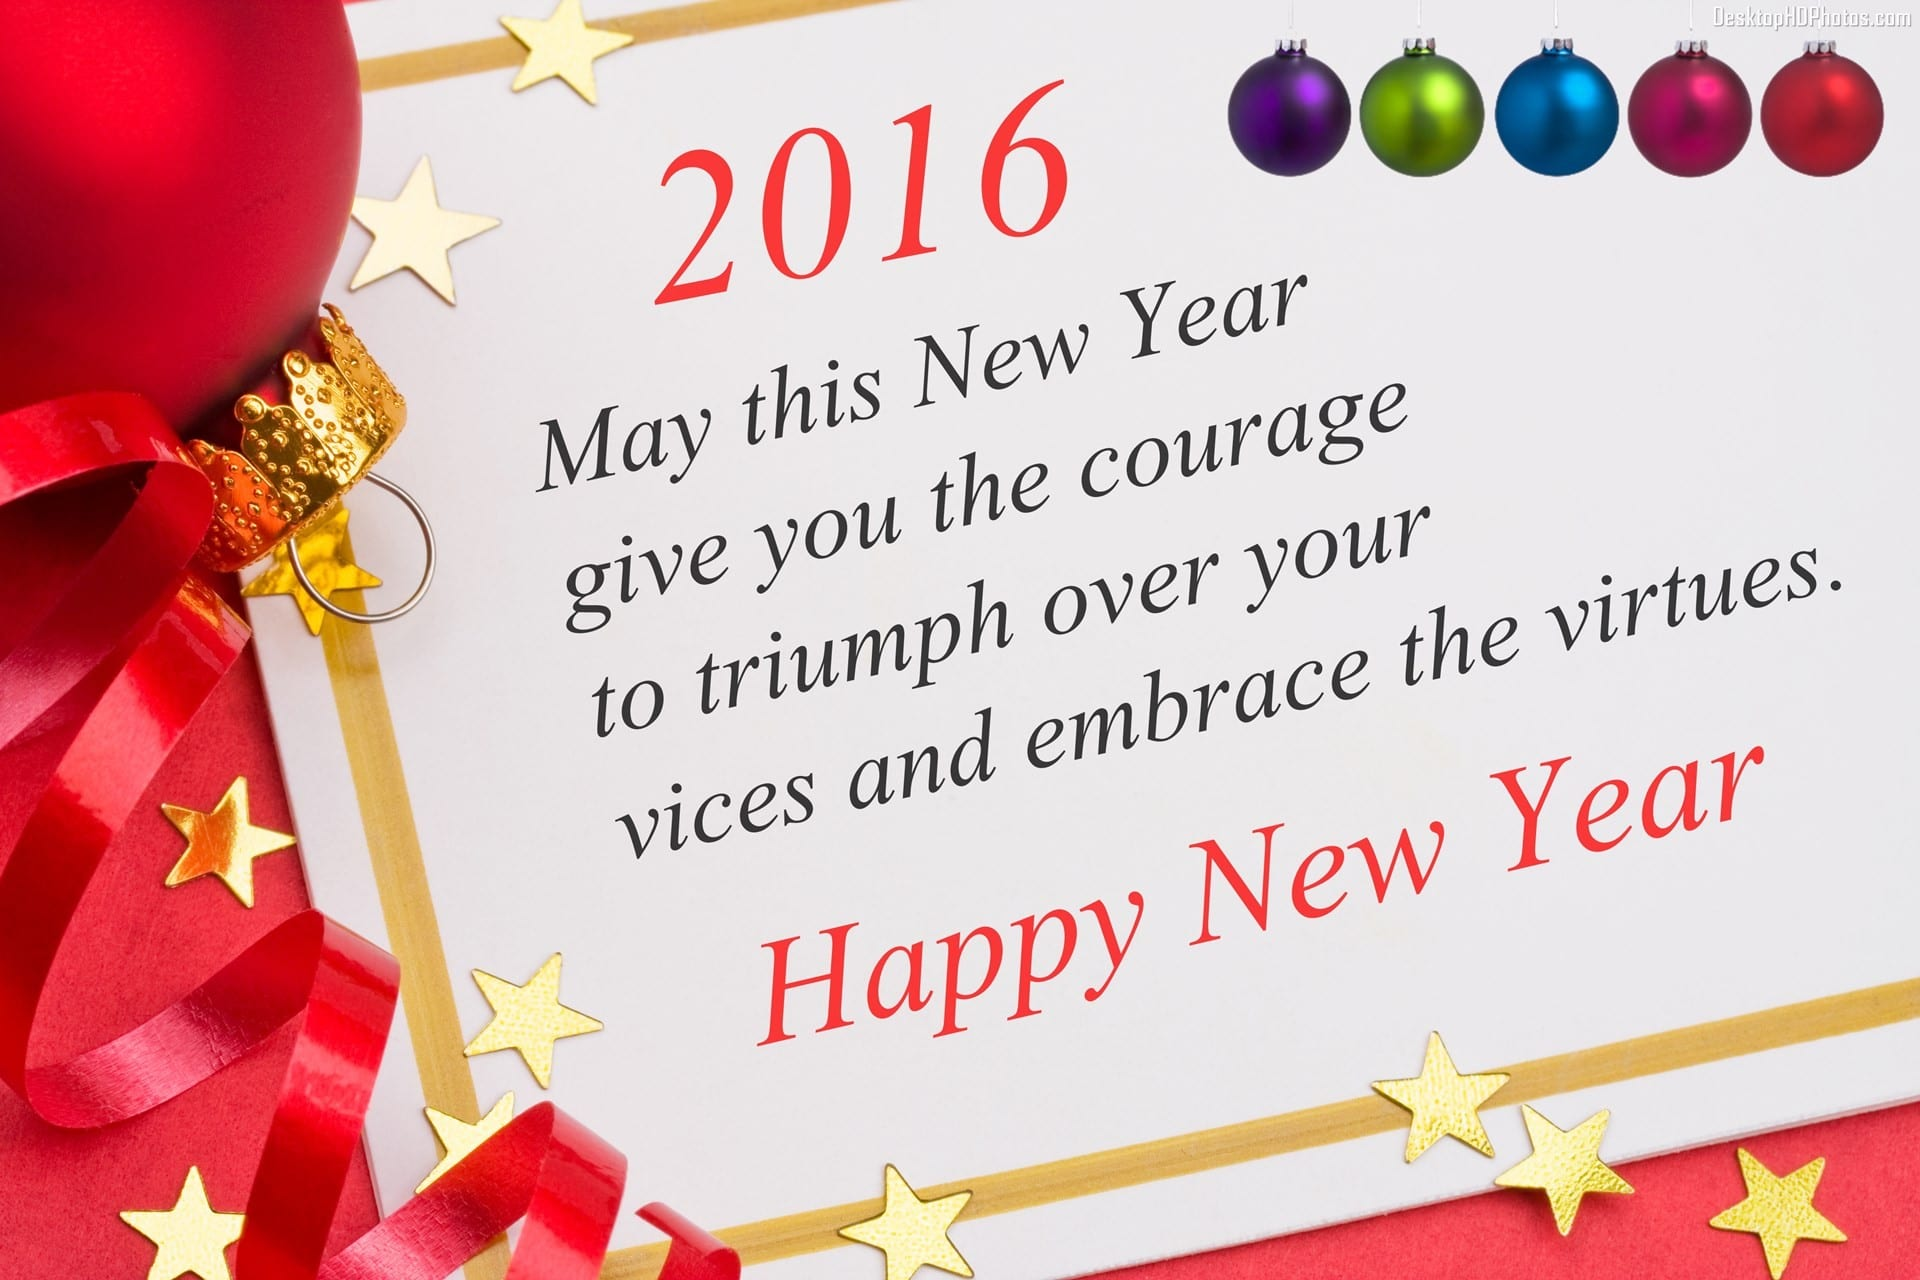 Happy new year 2016 quotes wishes message sms happy new year quotes 2016 for mom m4hsunfo